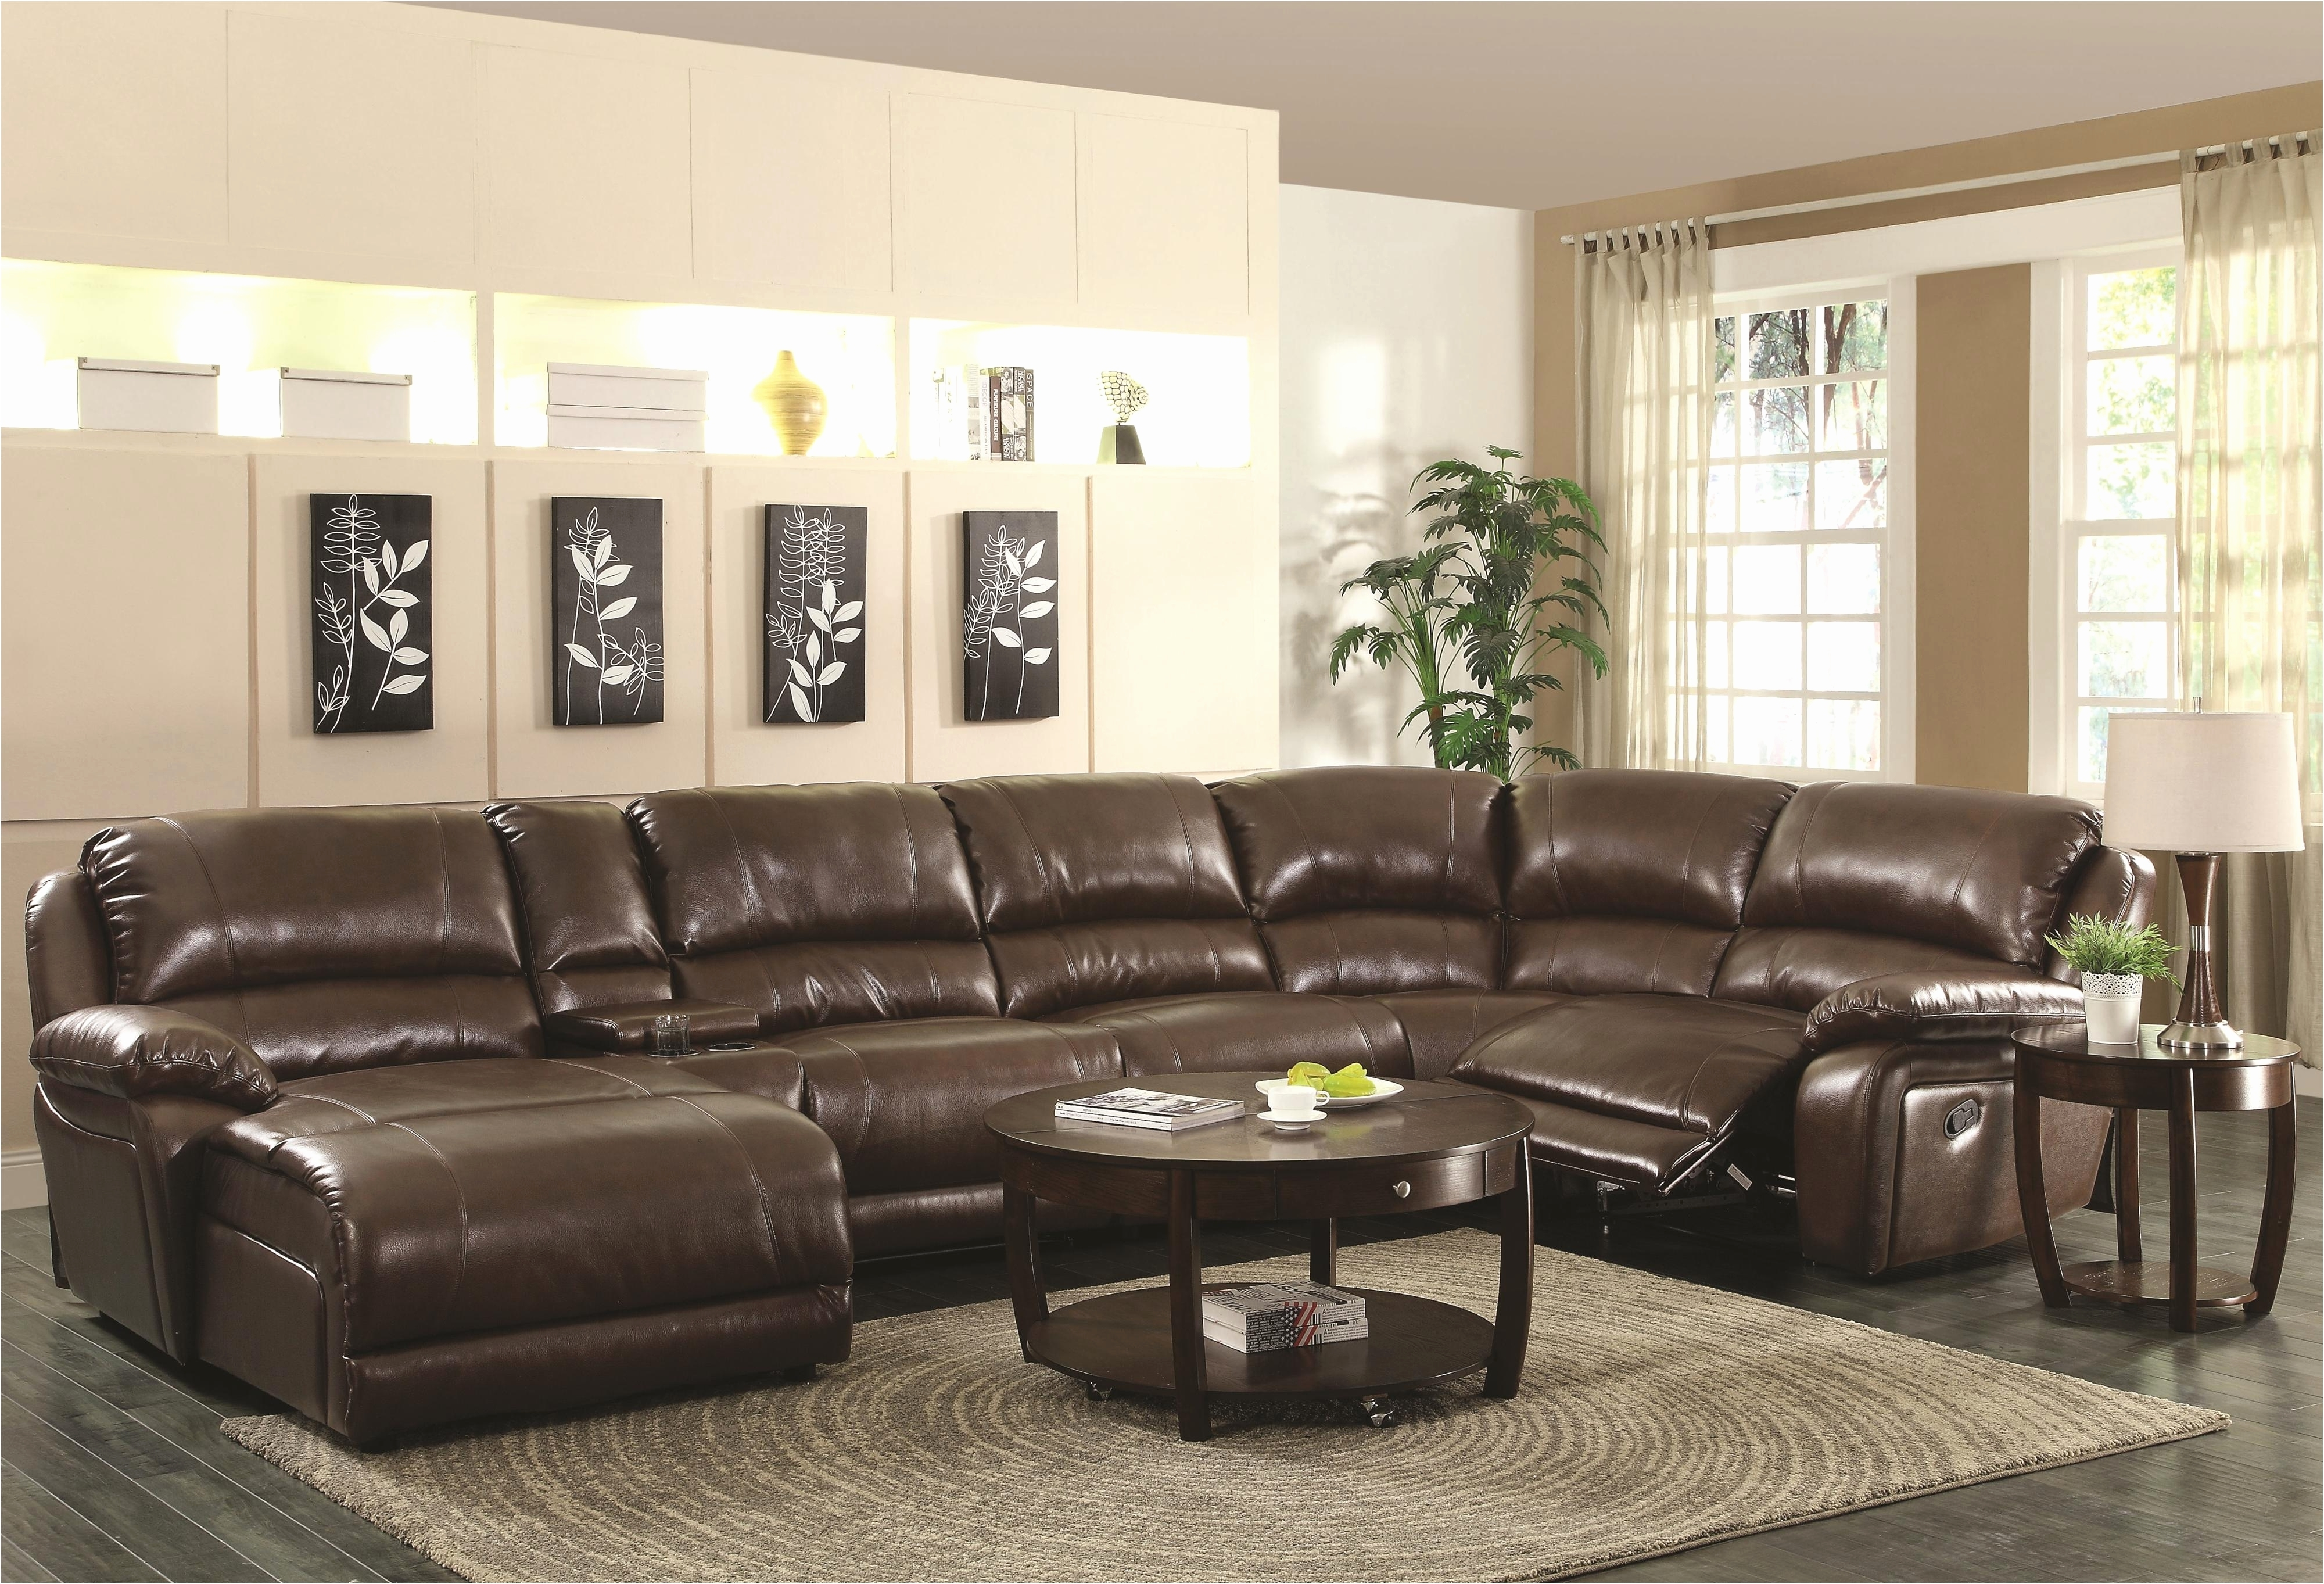 Best And Newest Elegant Sectional Sofas With Regard To Sectional Sofas Leather Elegant Delighful Couches With Chaise New (View 2 of 15)